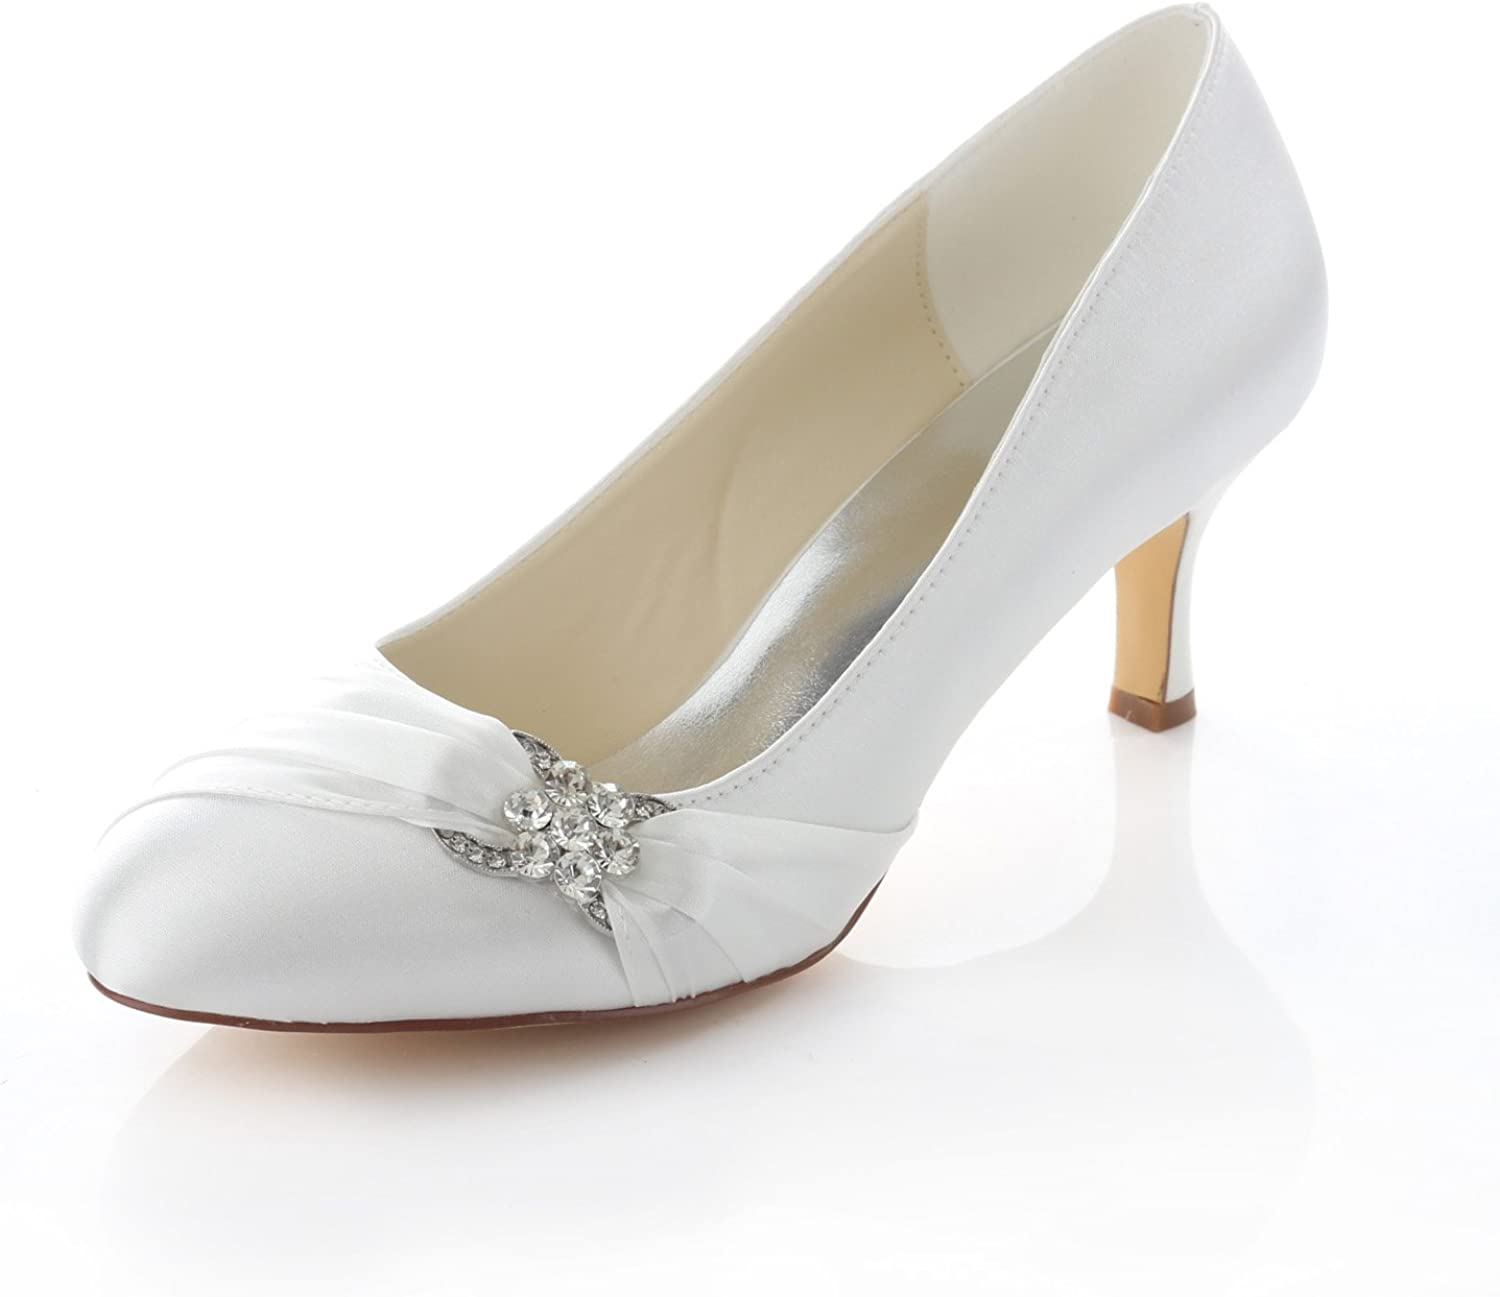 Emily Bridal San Jose Mall 3780-1A Women's Wedding Shoes Closed 2.56 Inche Industry No. 1 Toe